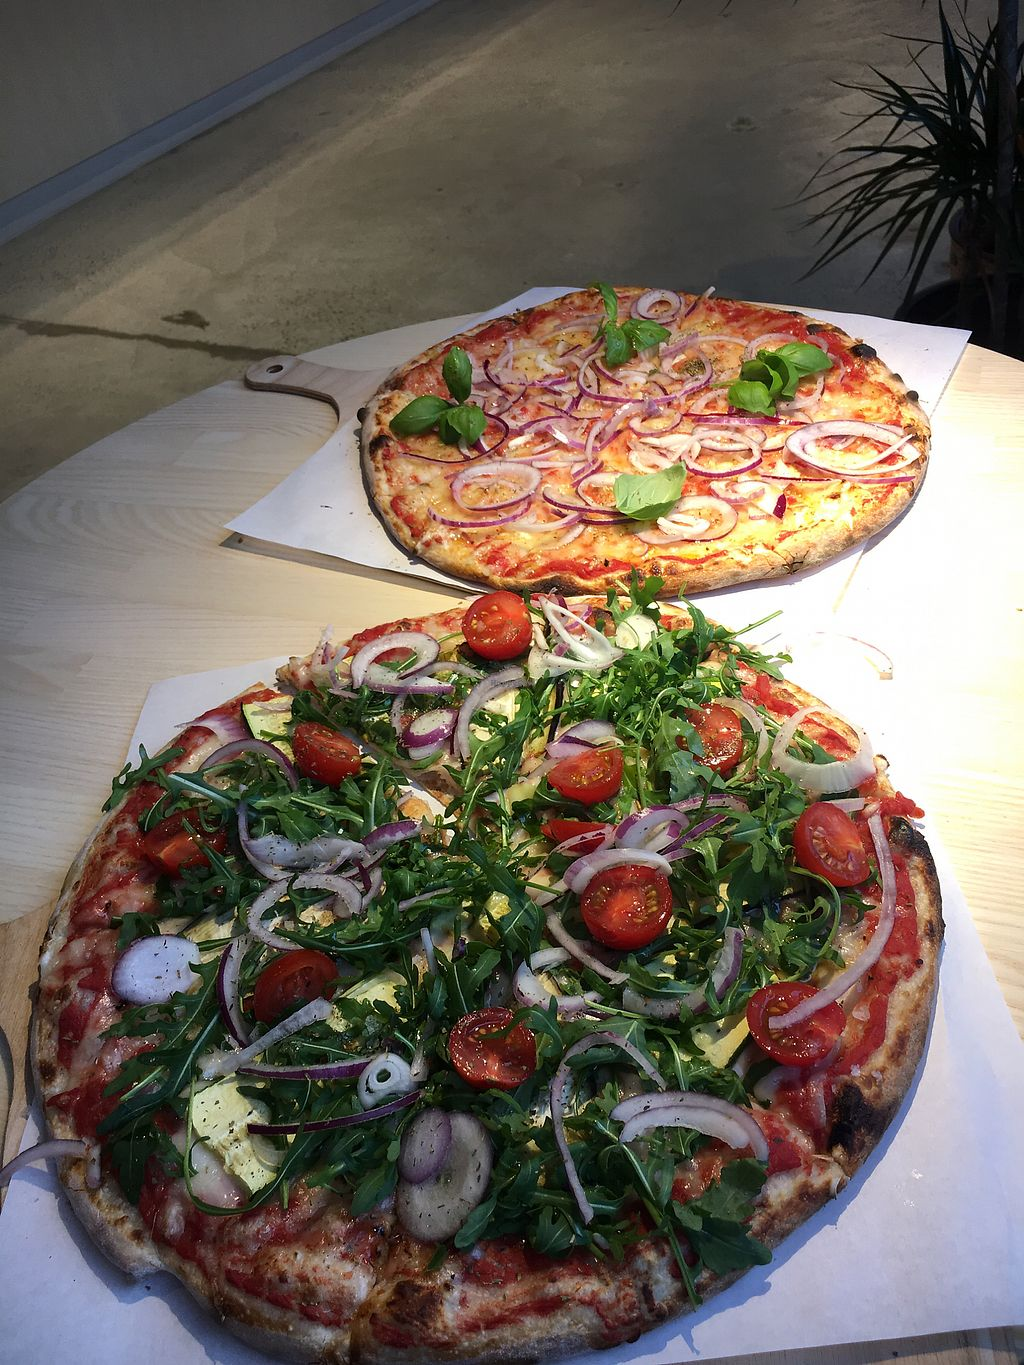 """Photo of Fredos  by <a href=""""/members/profile/EmilyHansson"""">EmilyHansson</a> <br/>Veggie fresco <br/> March 9, 2018  - <a href='/contact/abuse/image/108600/368533'>Report</a>"""